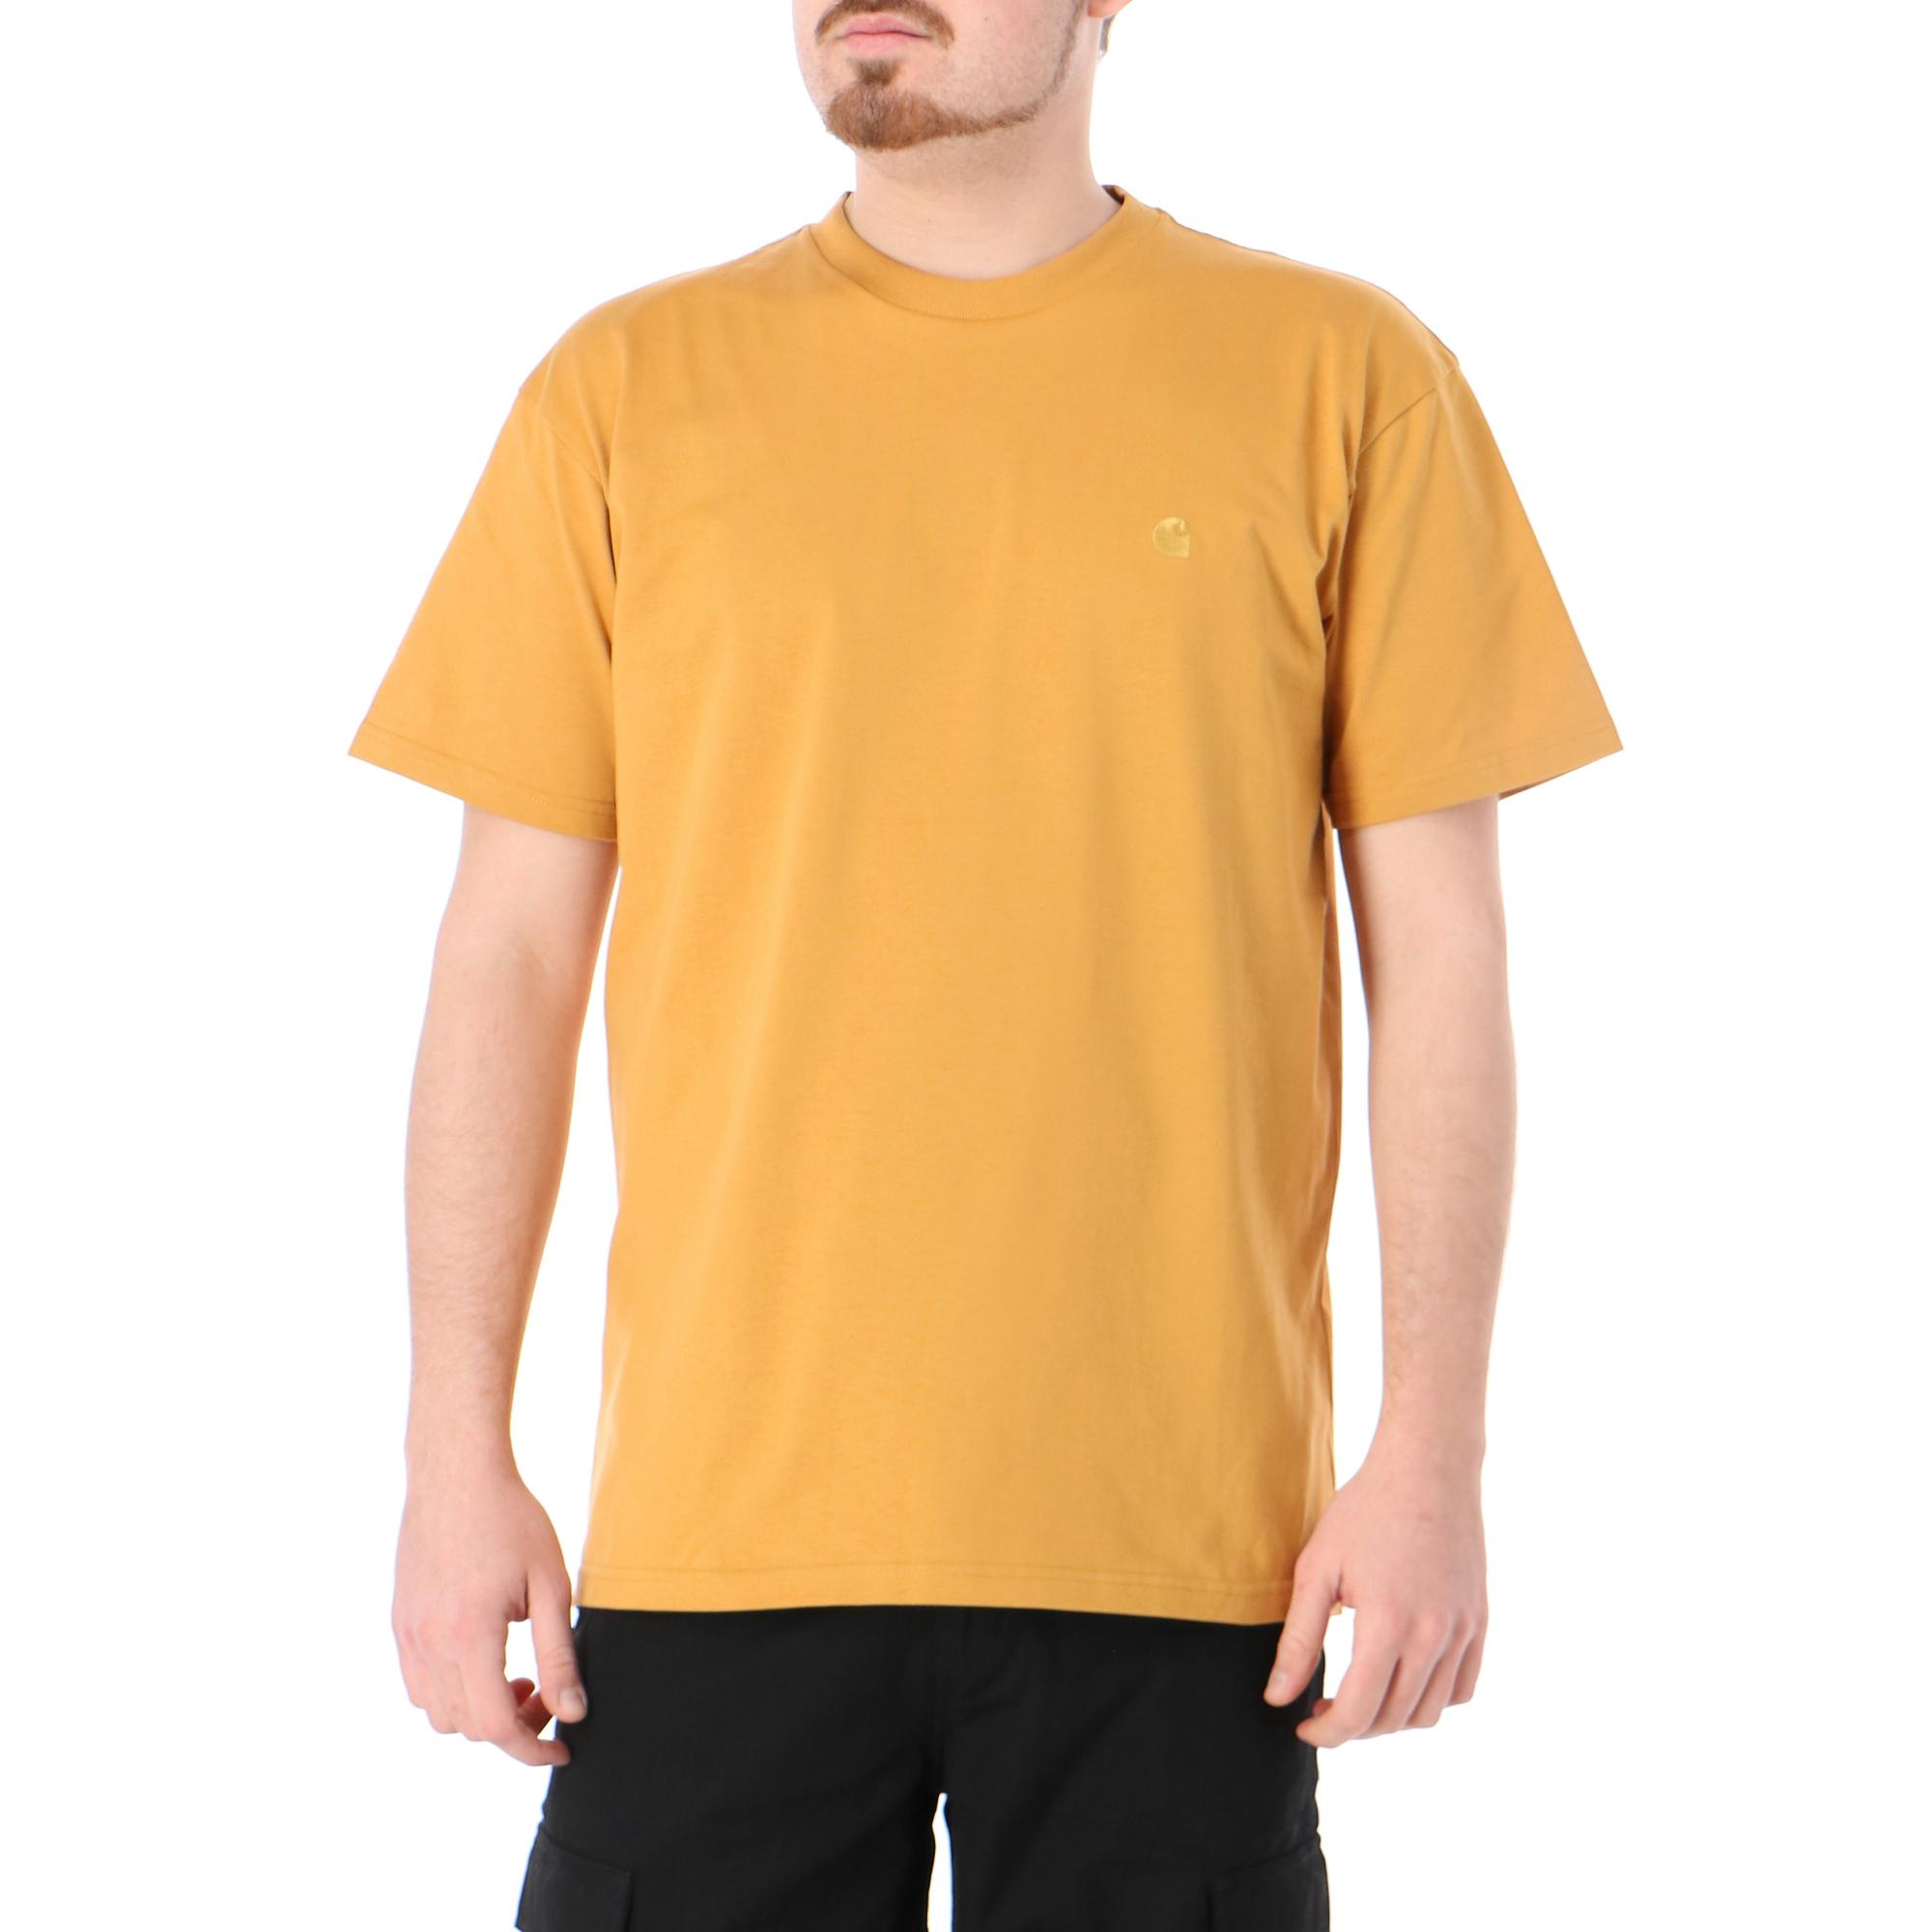 Carhartt S/s Chase T-shirt Winter sun gold